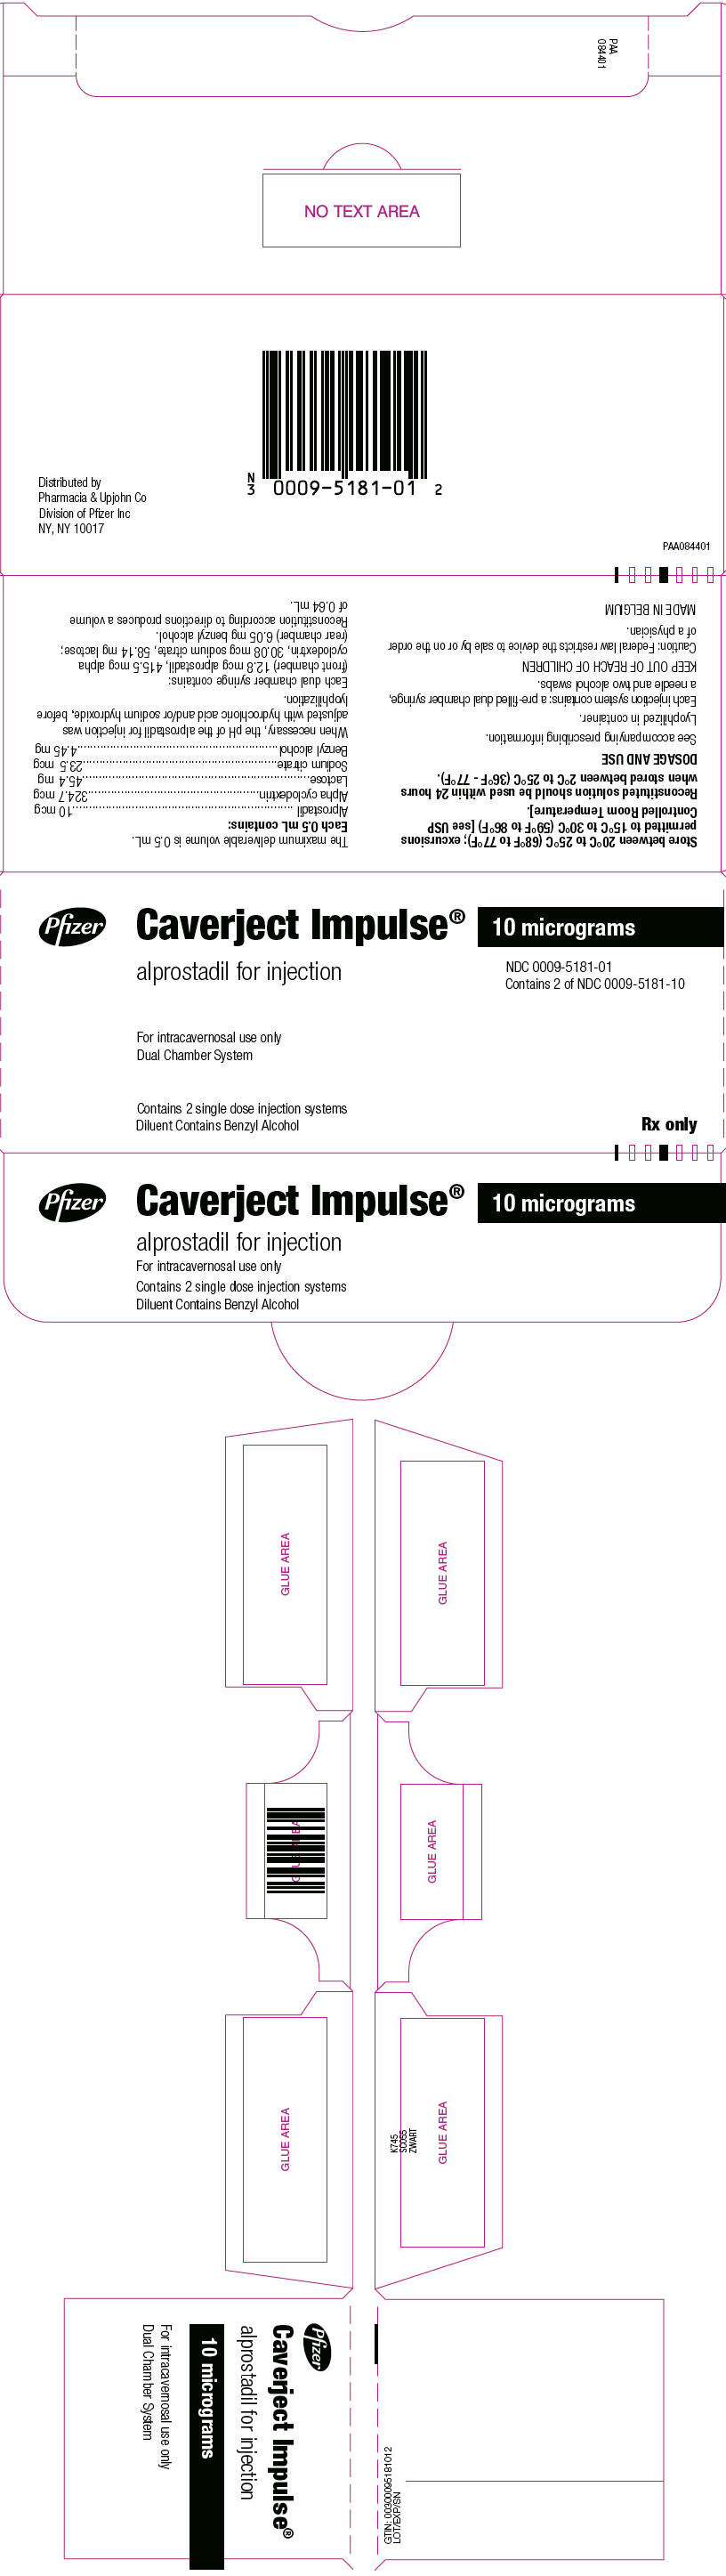 Where To Inject Intracavernosal Injections : Dailymed caverject impulse alprostadil injection